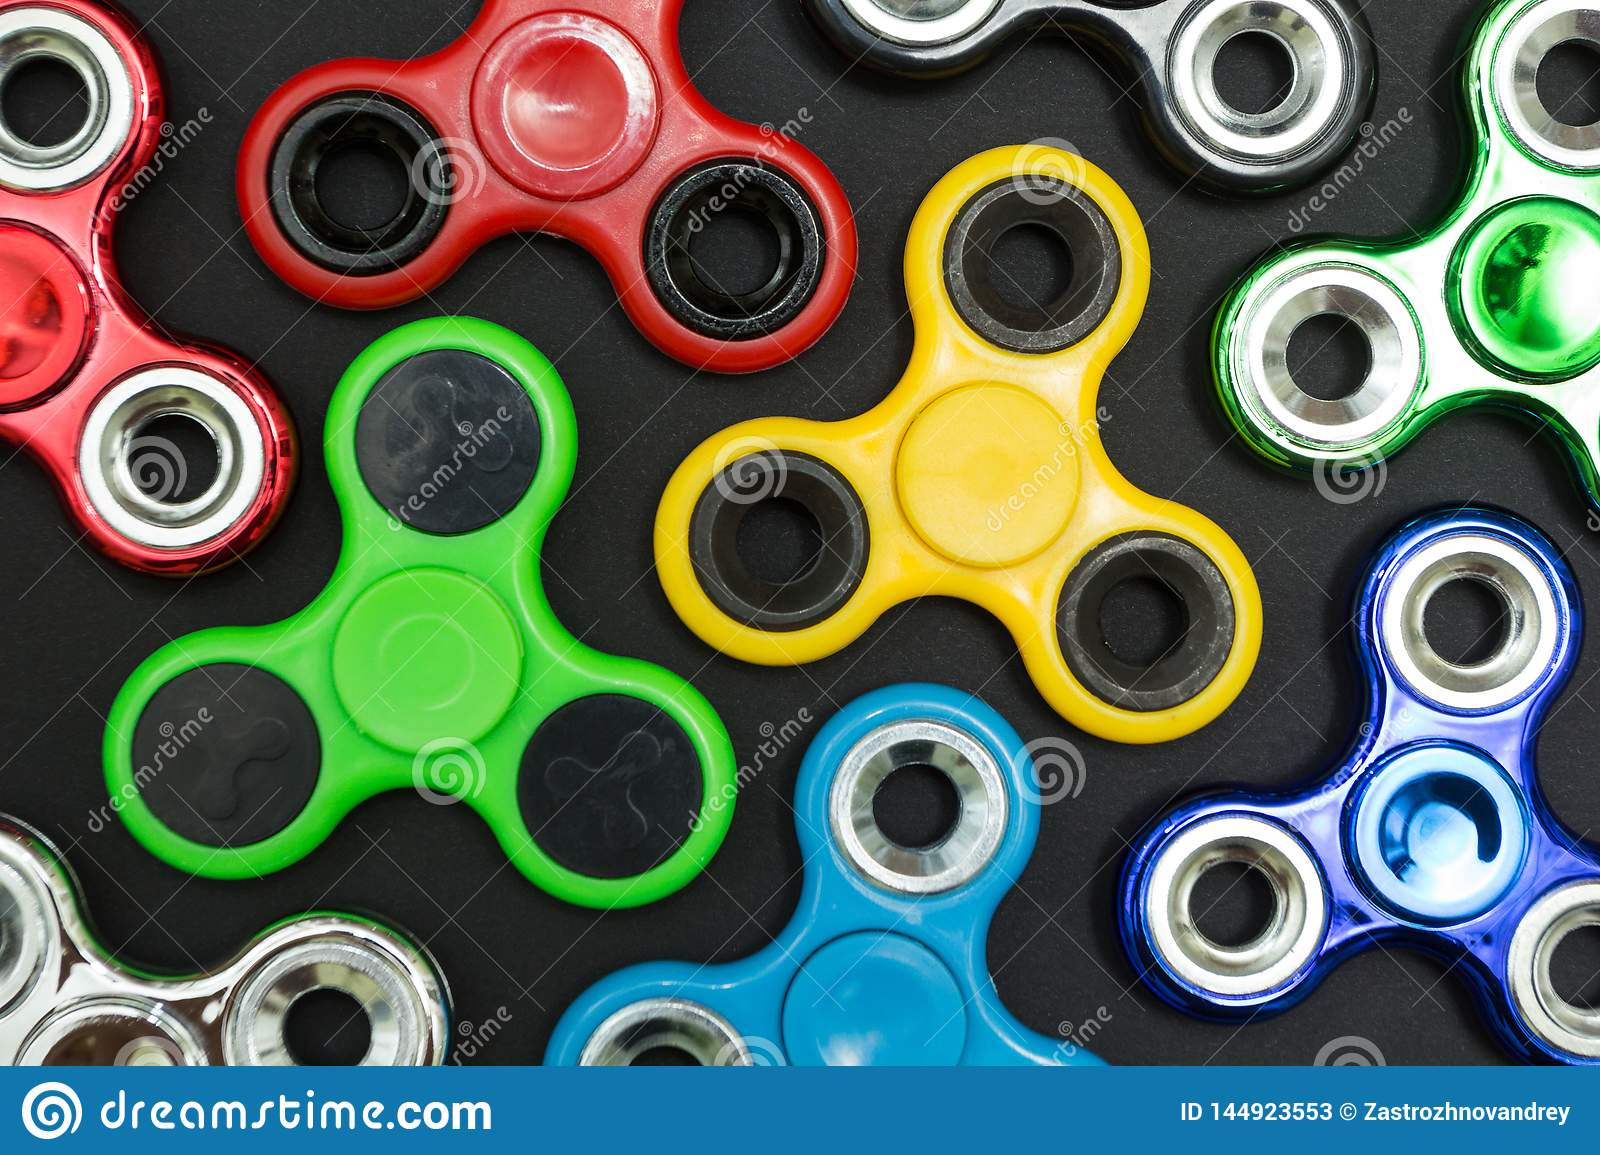 Background of fidget finger spinner stress, anxiety relief toy